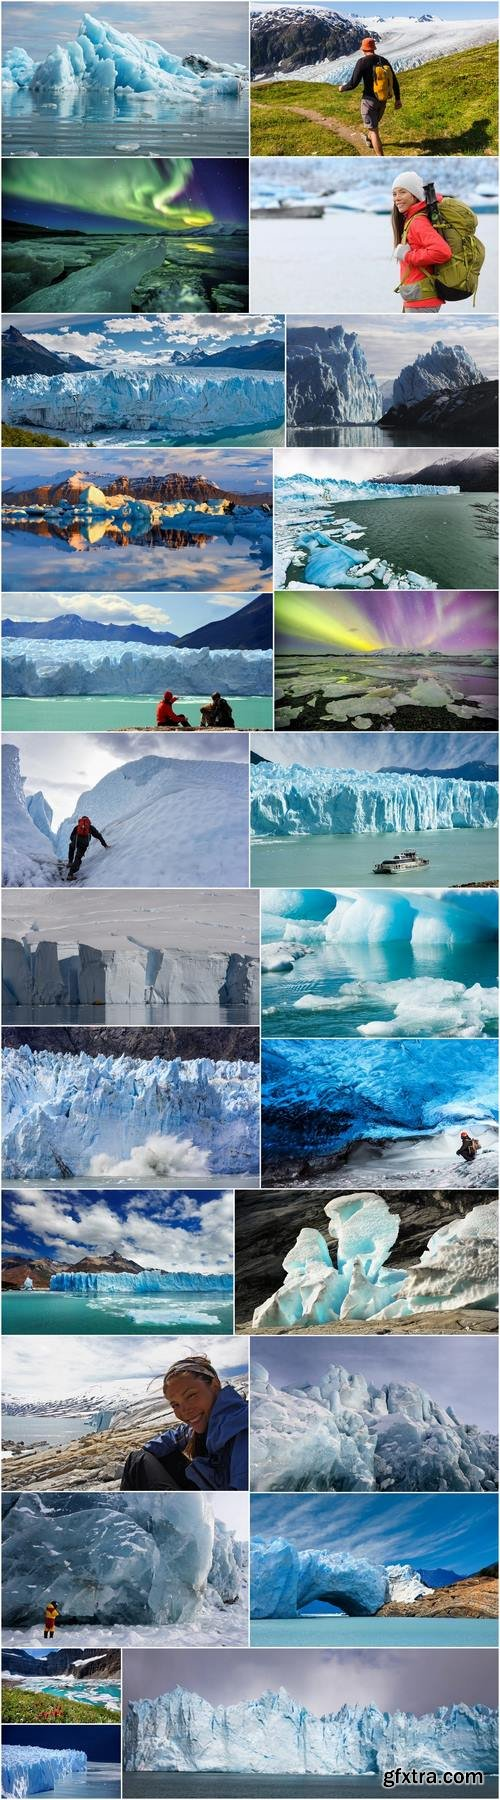 Glacier ice iceberg landscape mountain cold 25 HQ Jpeg